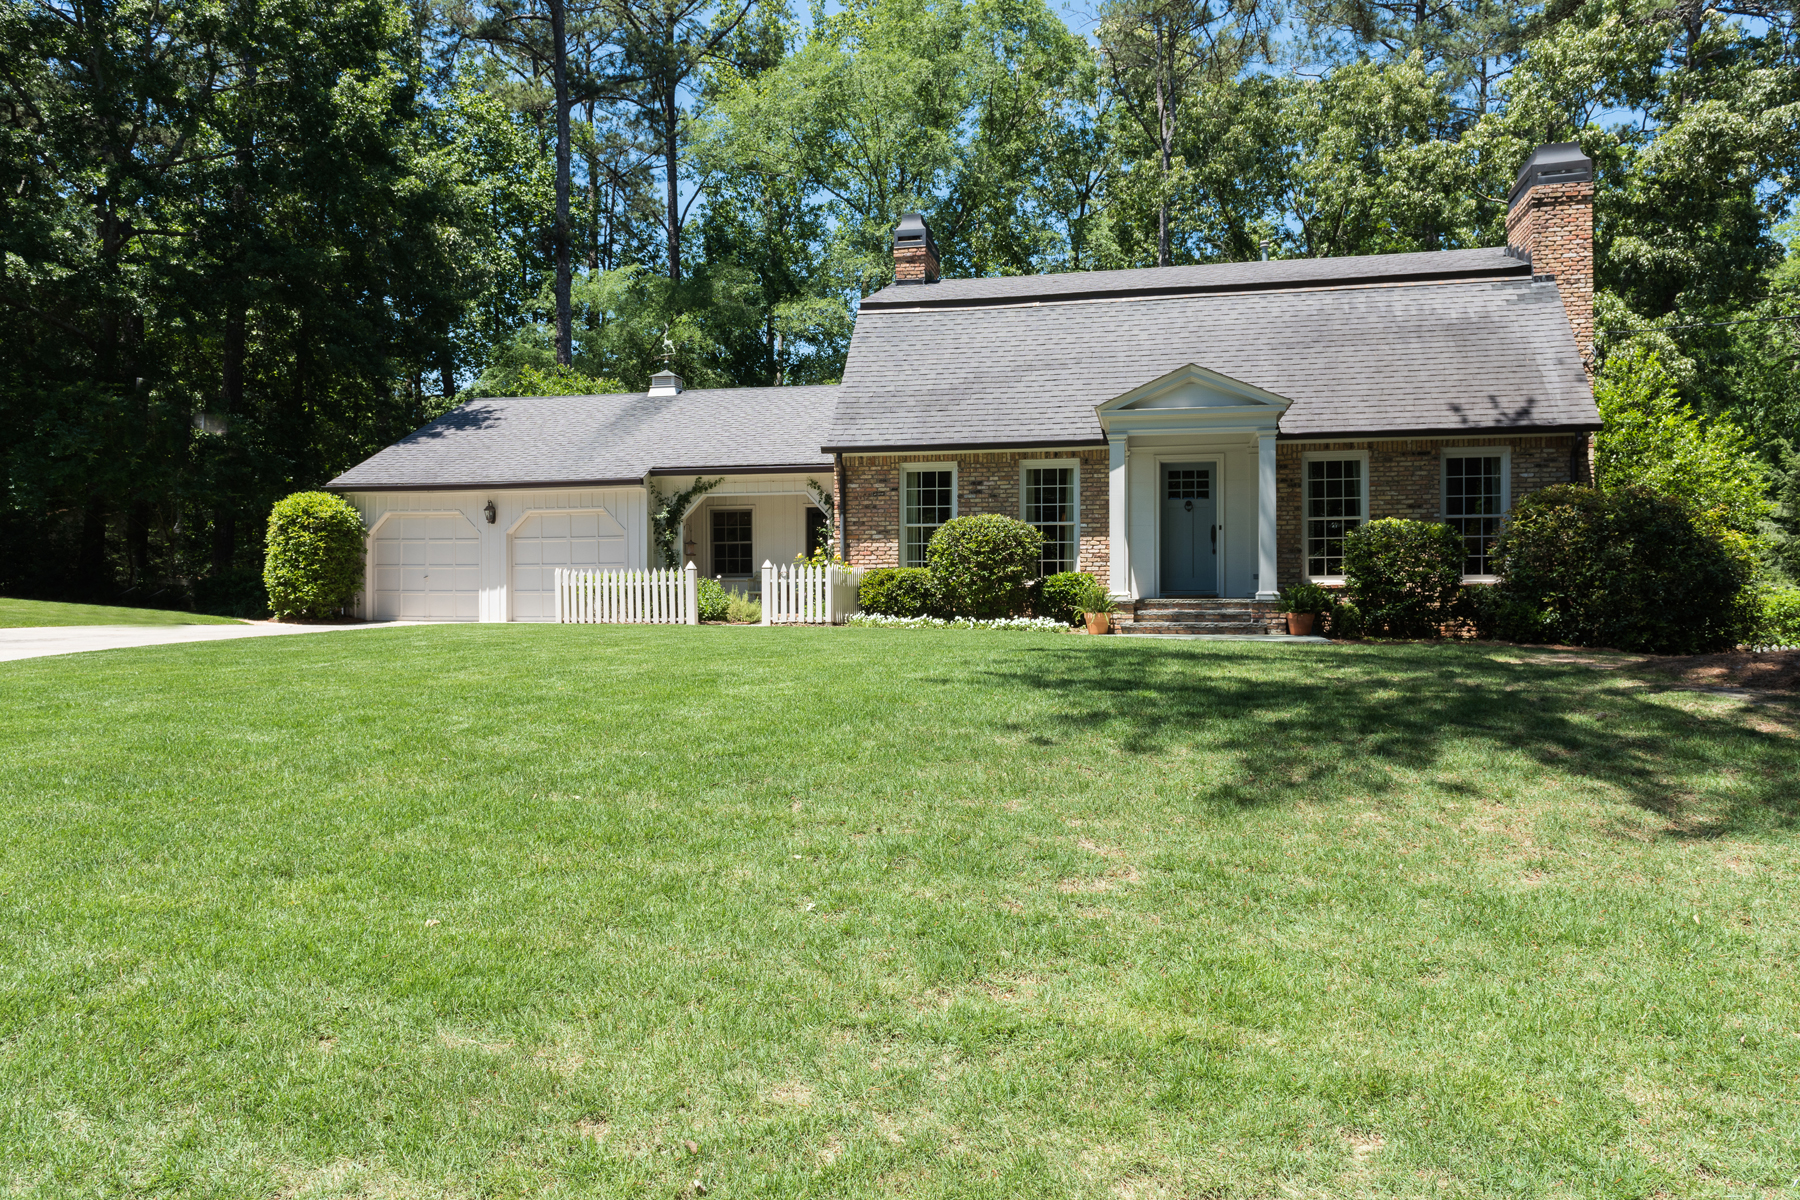 Single Family Home for Sale at Updated Cottage That Exudes Warmth And Charm 4220 Exeter Close NW Chastain Park, Atlanta, Georgia, 30327 United States